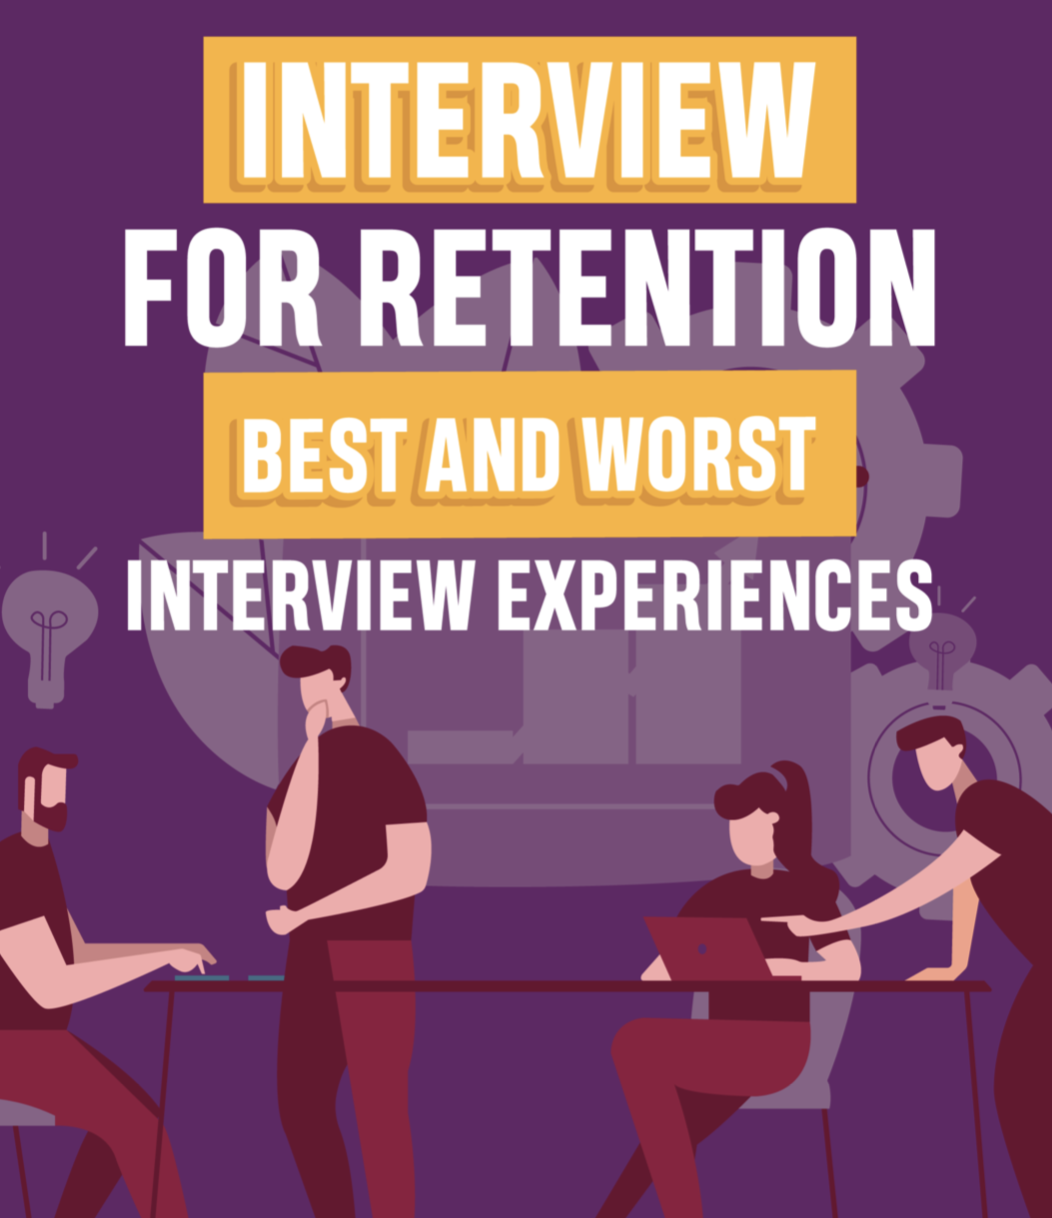 Interview for Retention Infographic